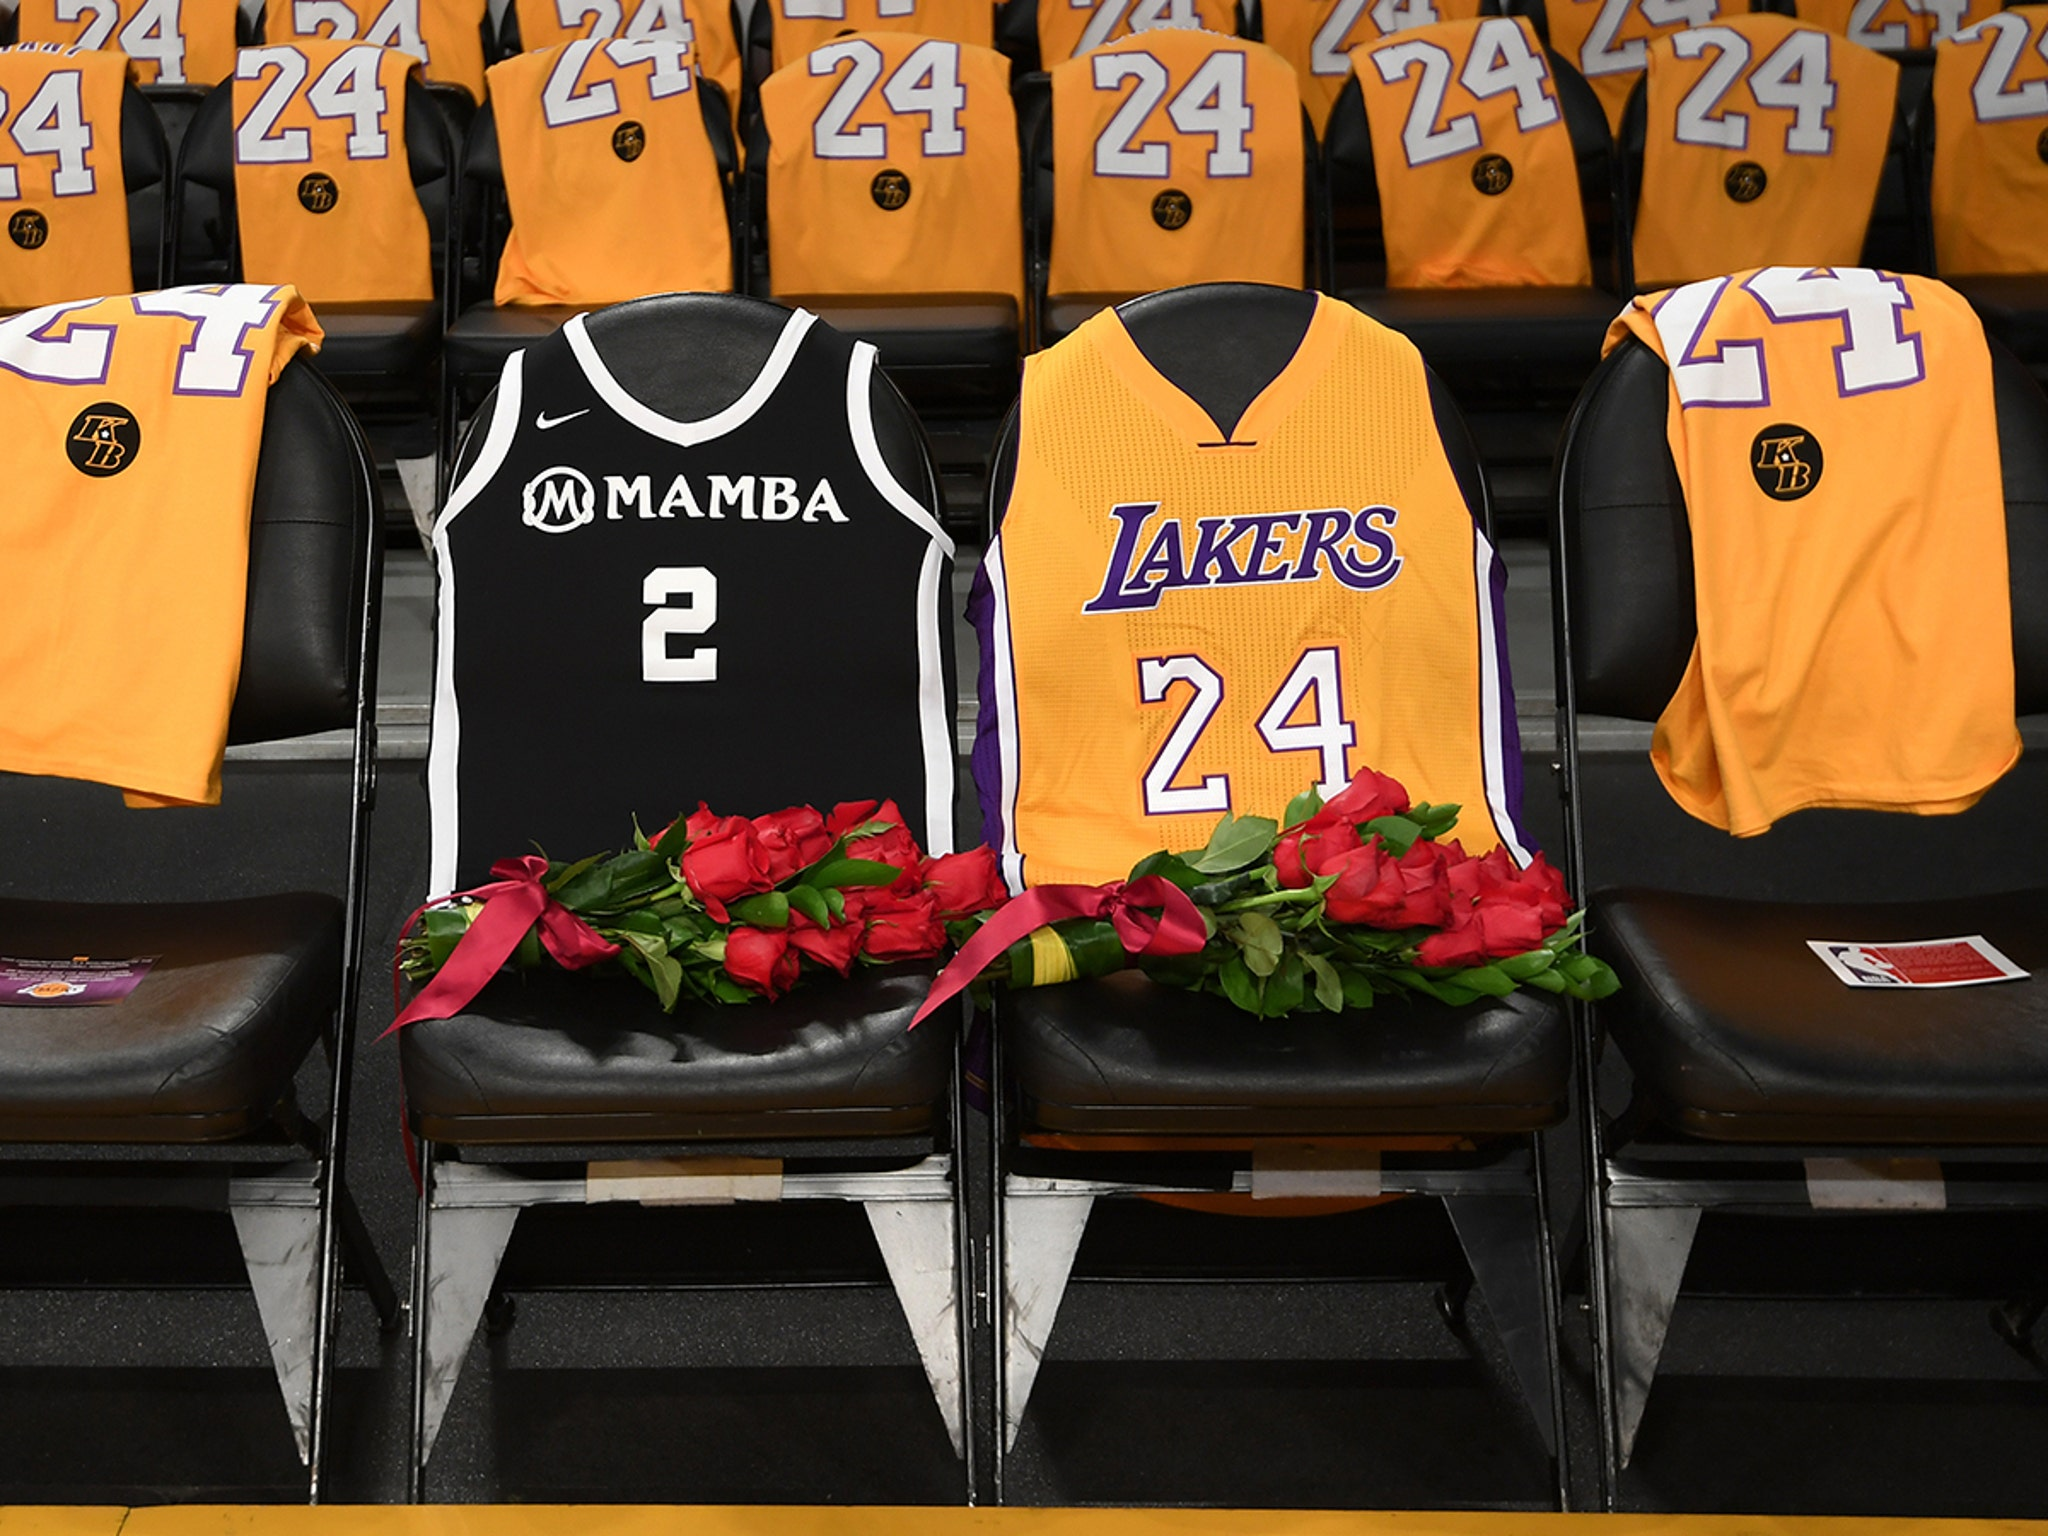 Lakers Put Kobe Bryant And Gigi's Jerseys On Courtside Seats For Game